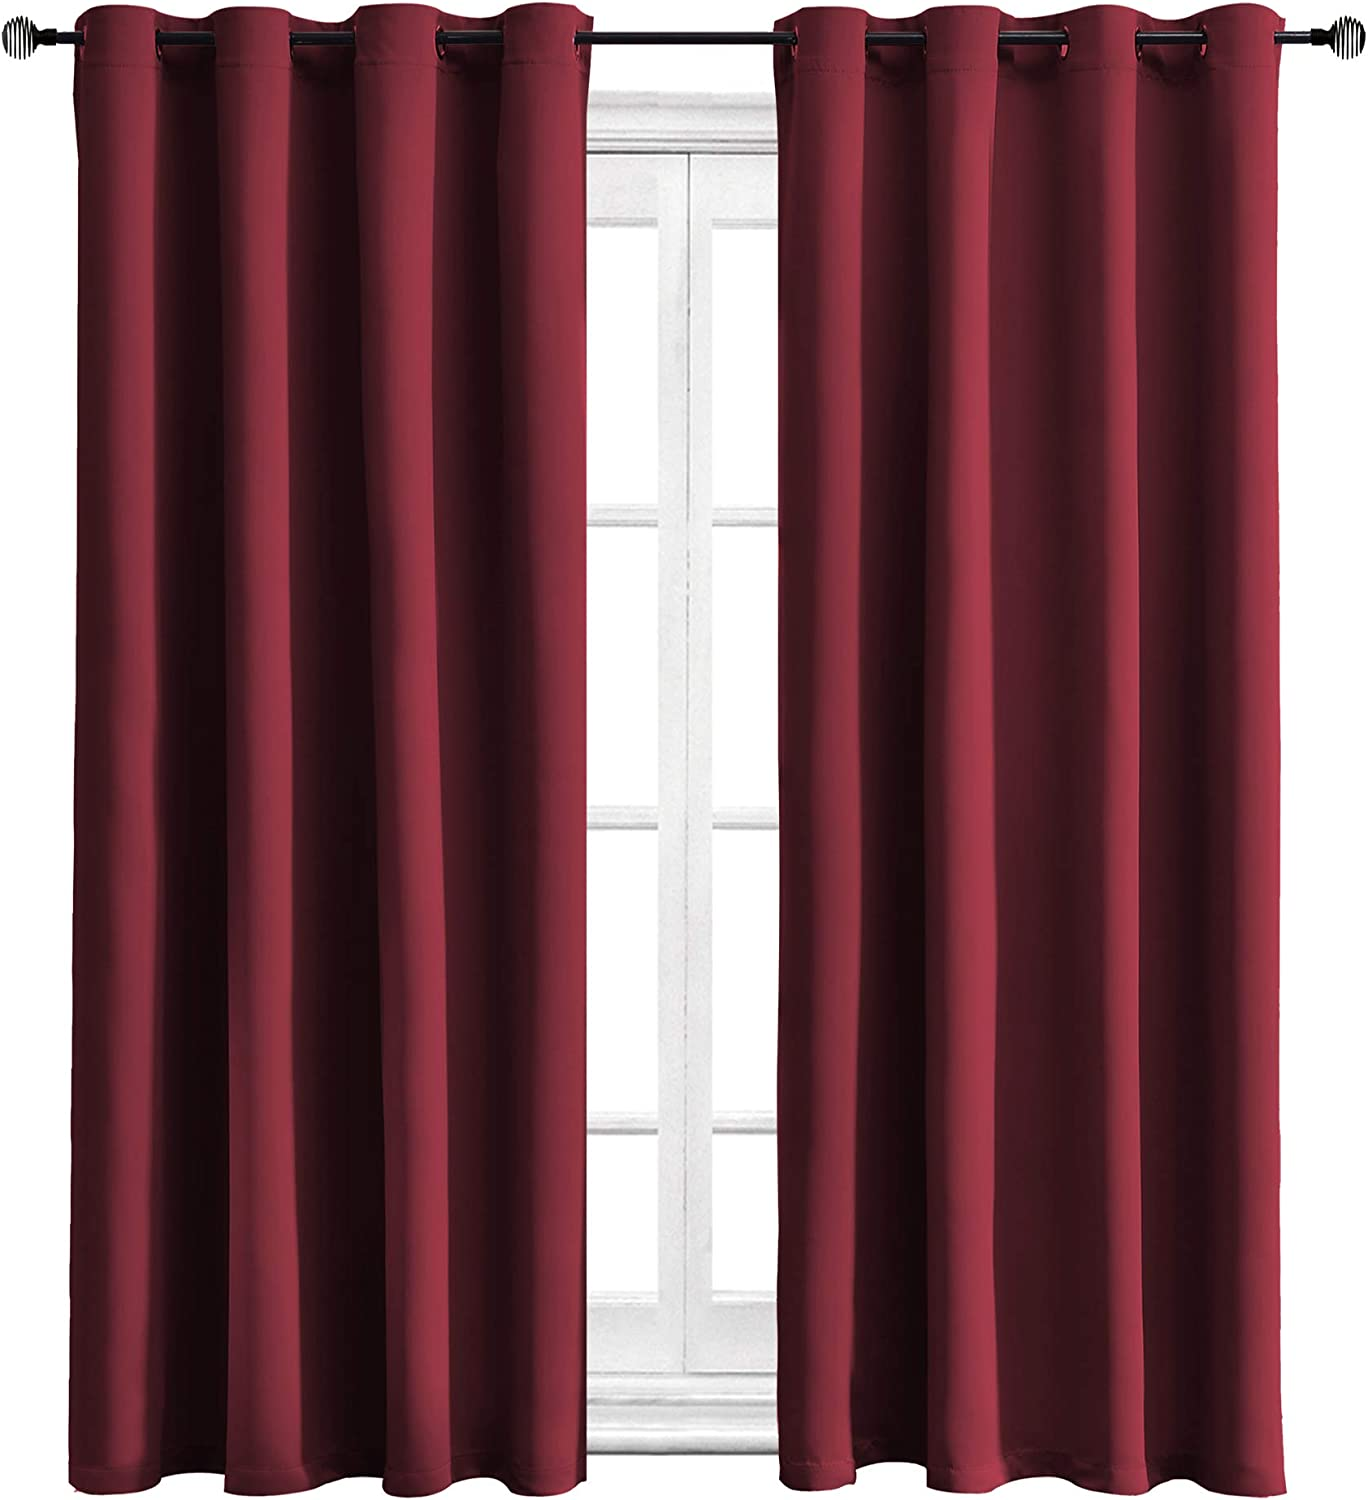 WONTEX Blackout Curtains Thermal Insulated with Grommet for Bedroom, 52 x 63 inch, Burgundy, 2 Curtain Panels